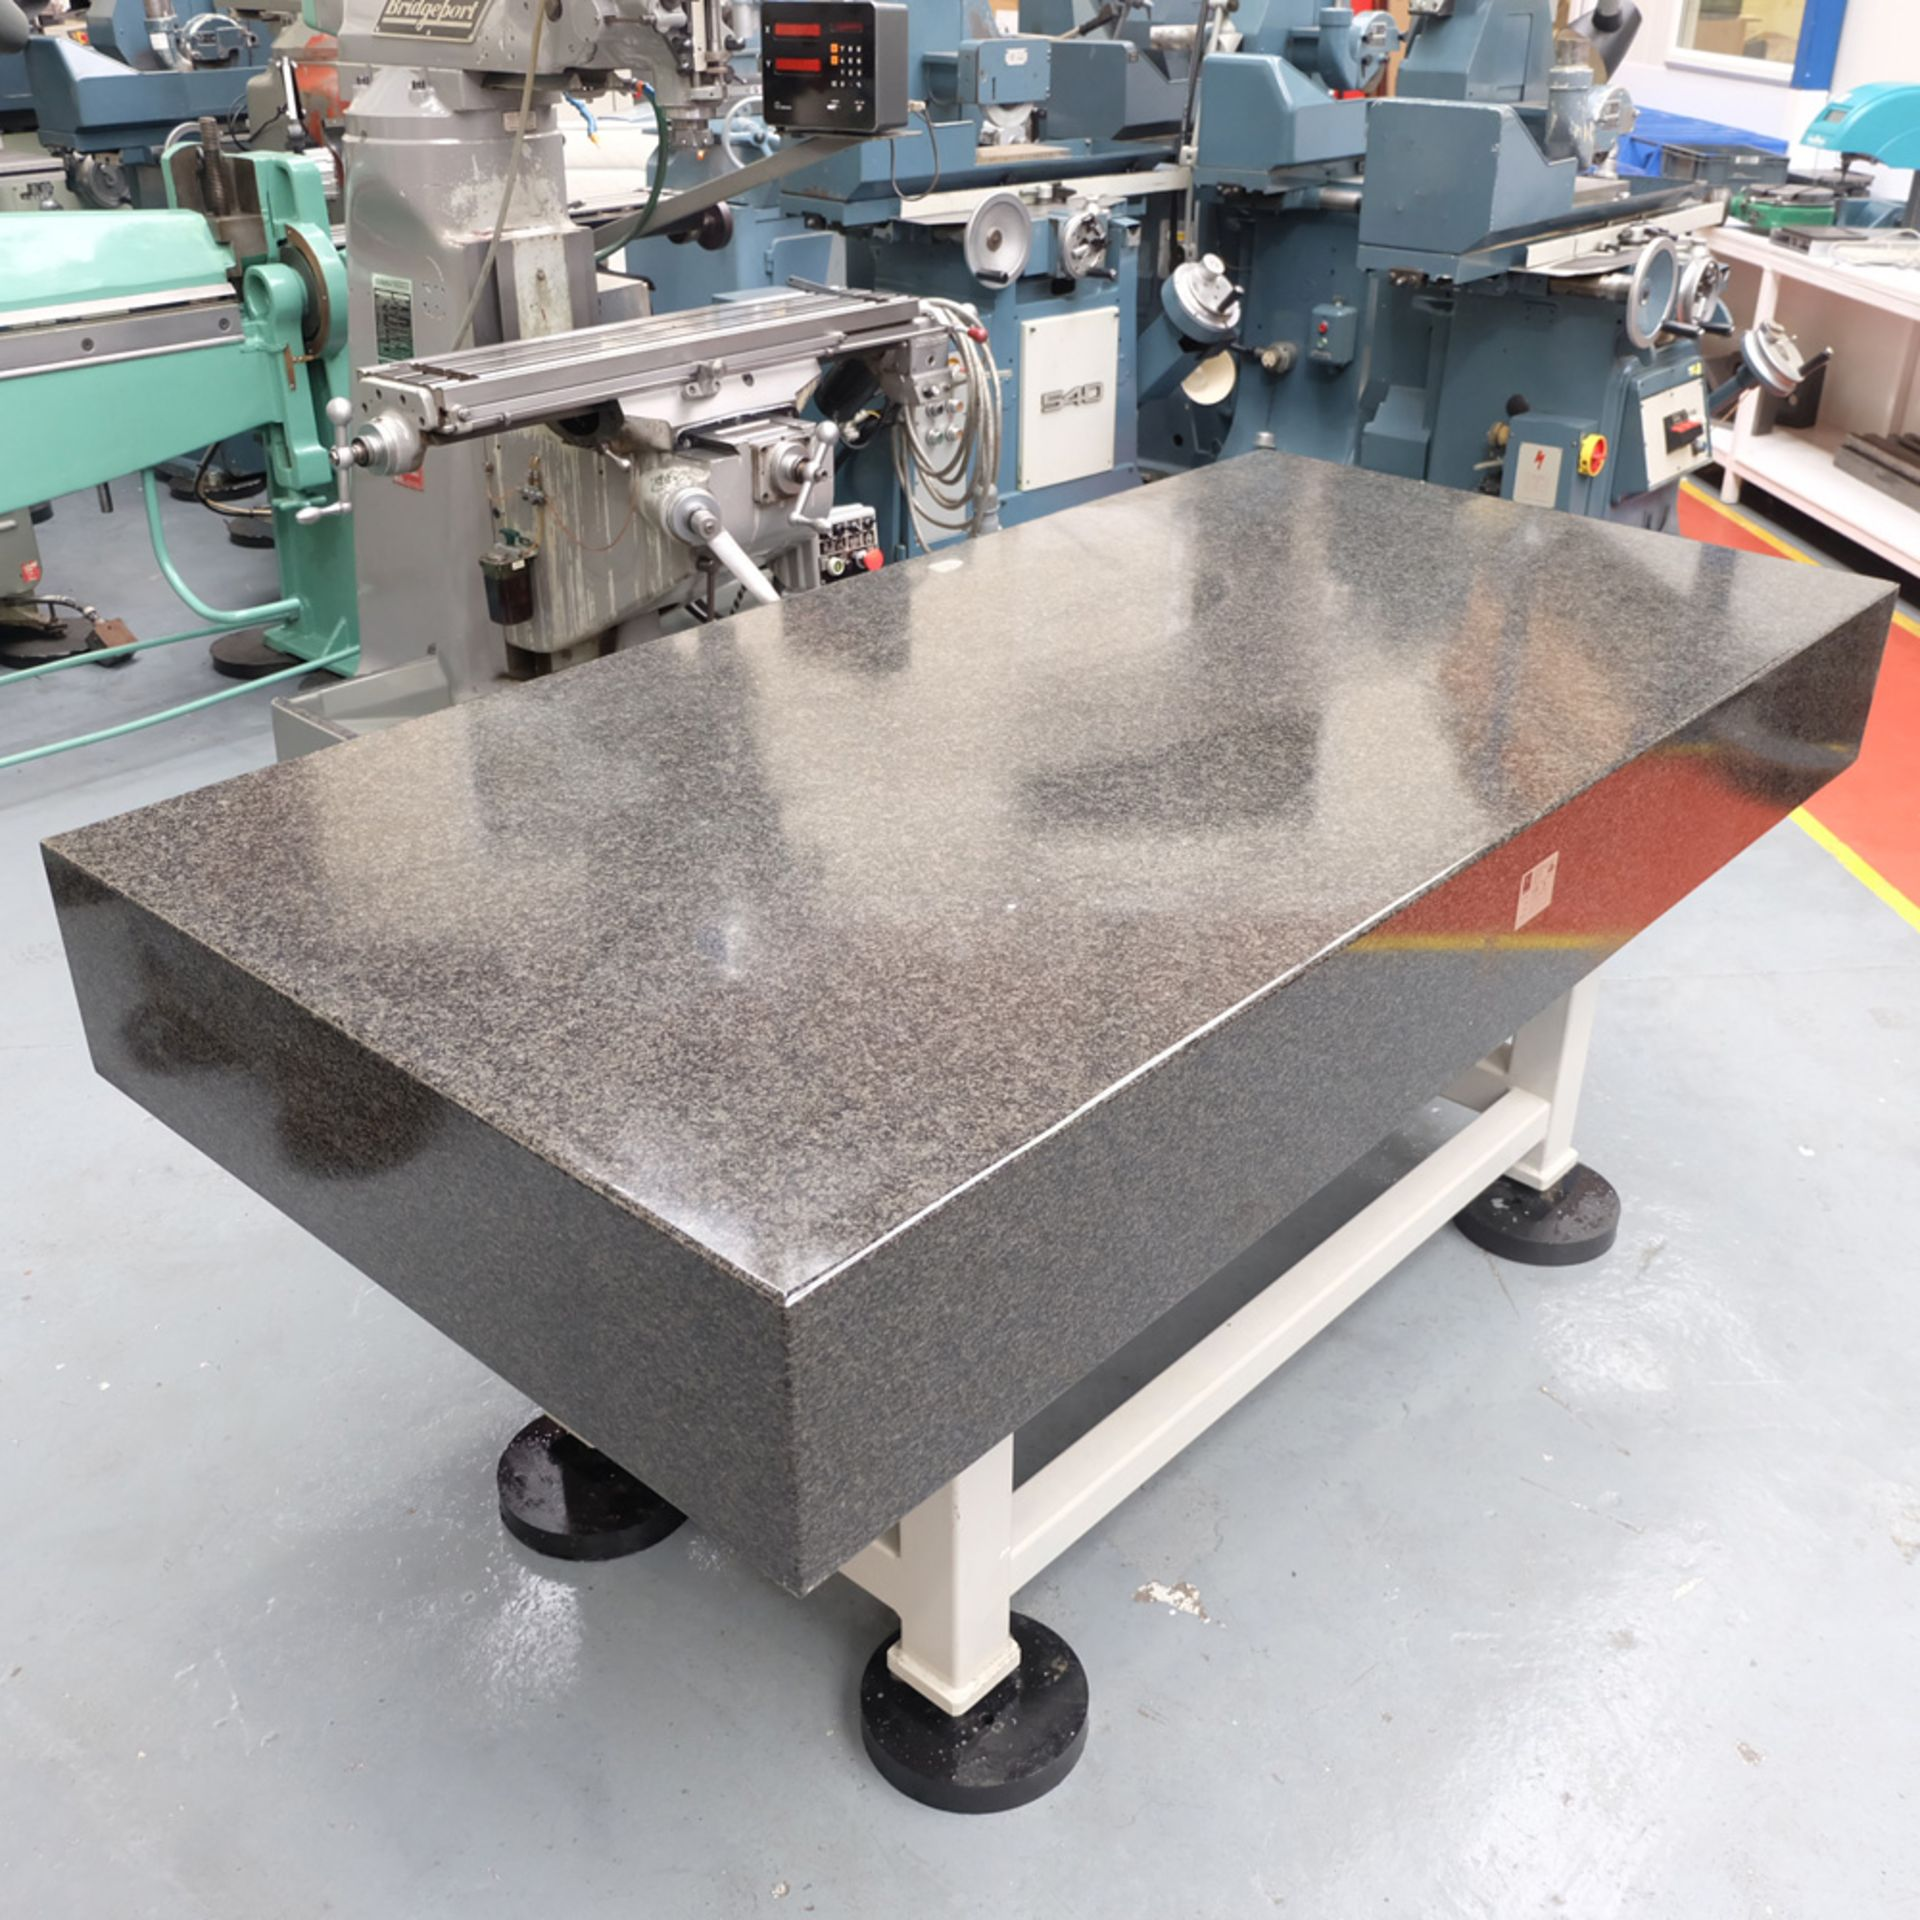 Eley Metrology Granite Surface Table. Table Size 2000mm x 1000mm x 260mm. - Image 3 of 7